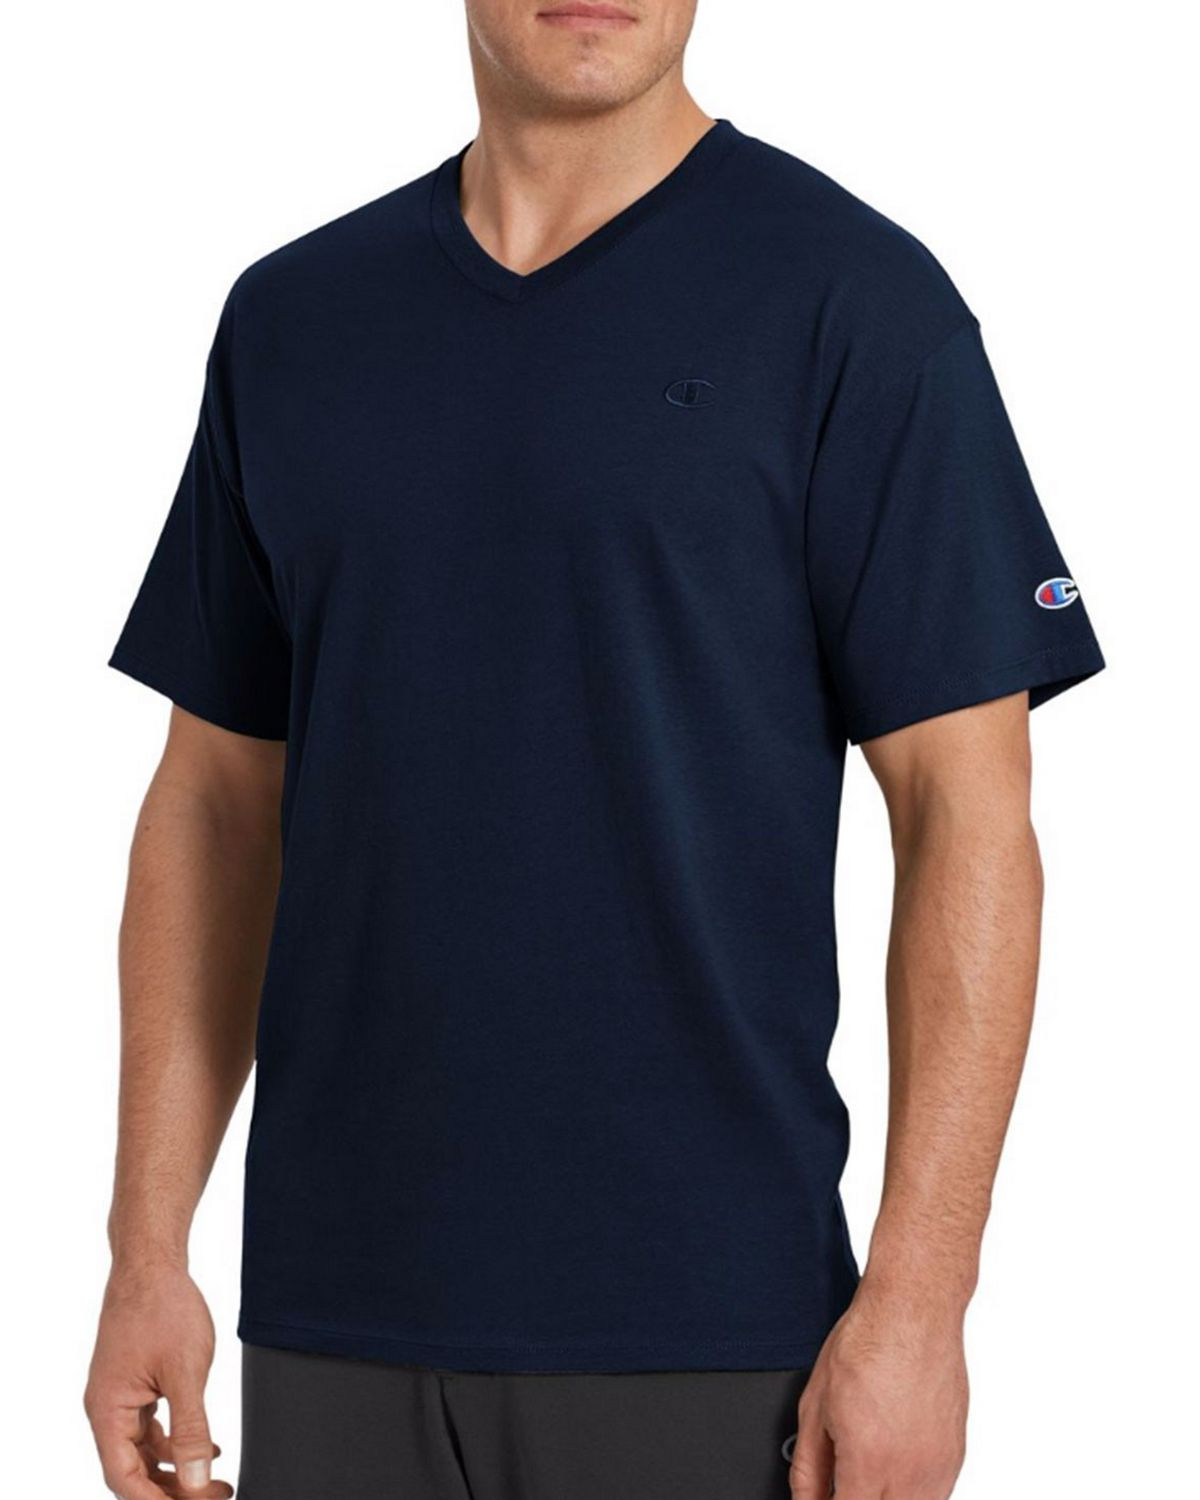 Champion T0221 Mens V-Neck Tee - Navy - XL T0221